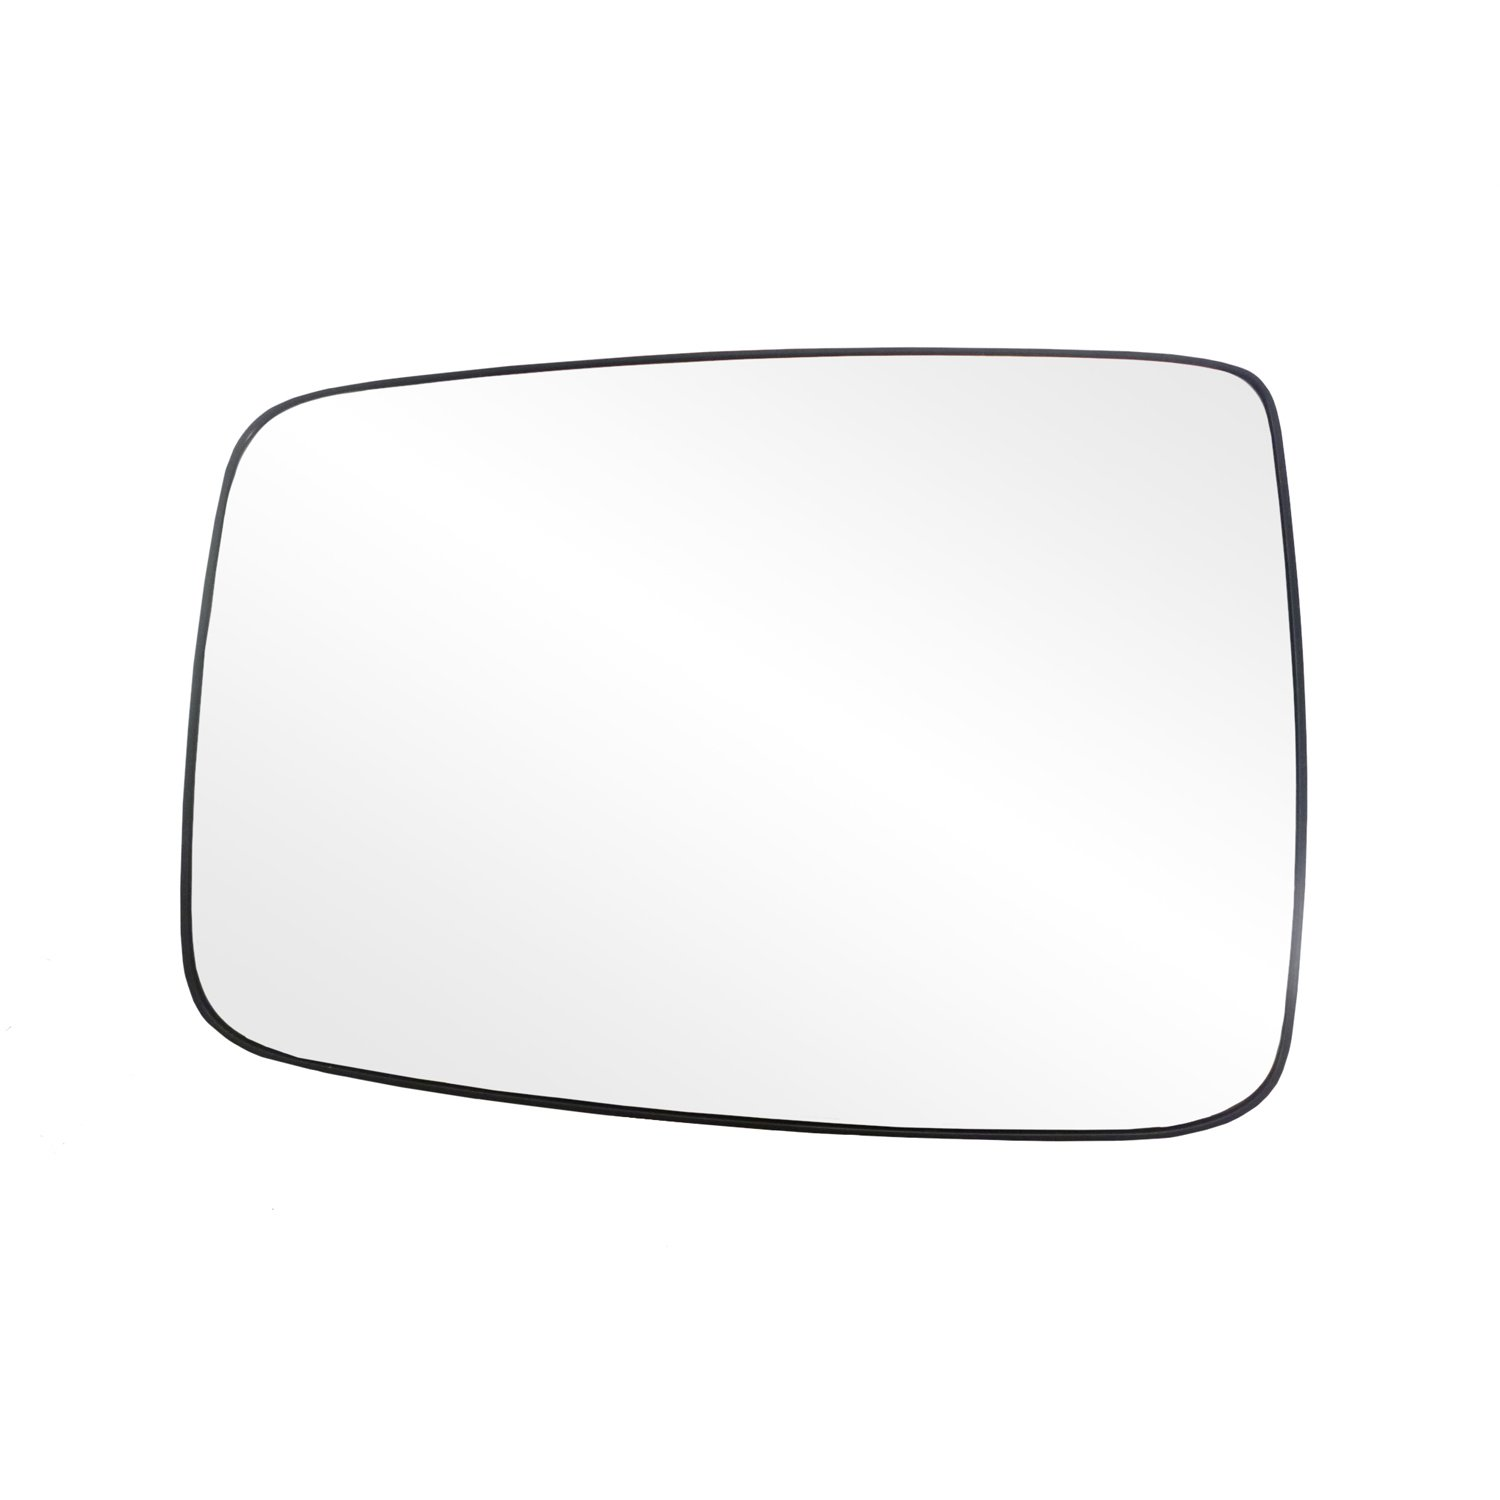 Fit System 88244 Dodge RAM 1500/2500/3500 Left Side Manual/Power Replacement Mirror Glass with Backing Plate